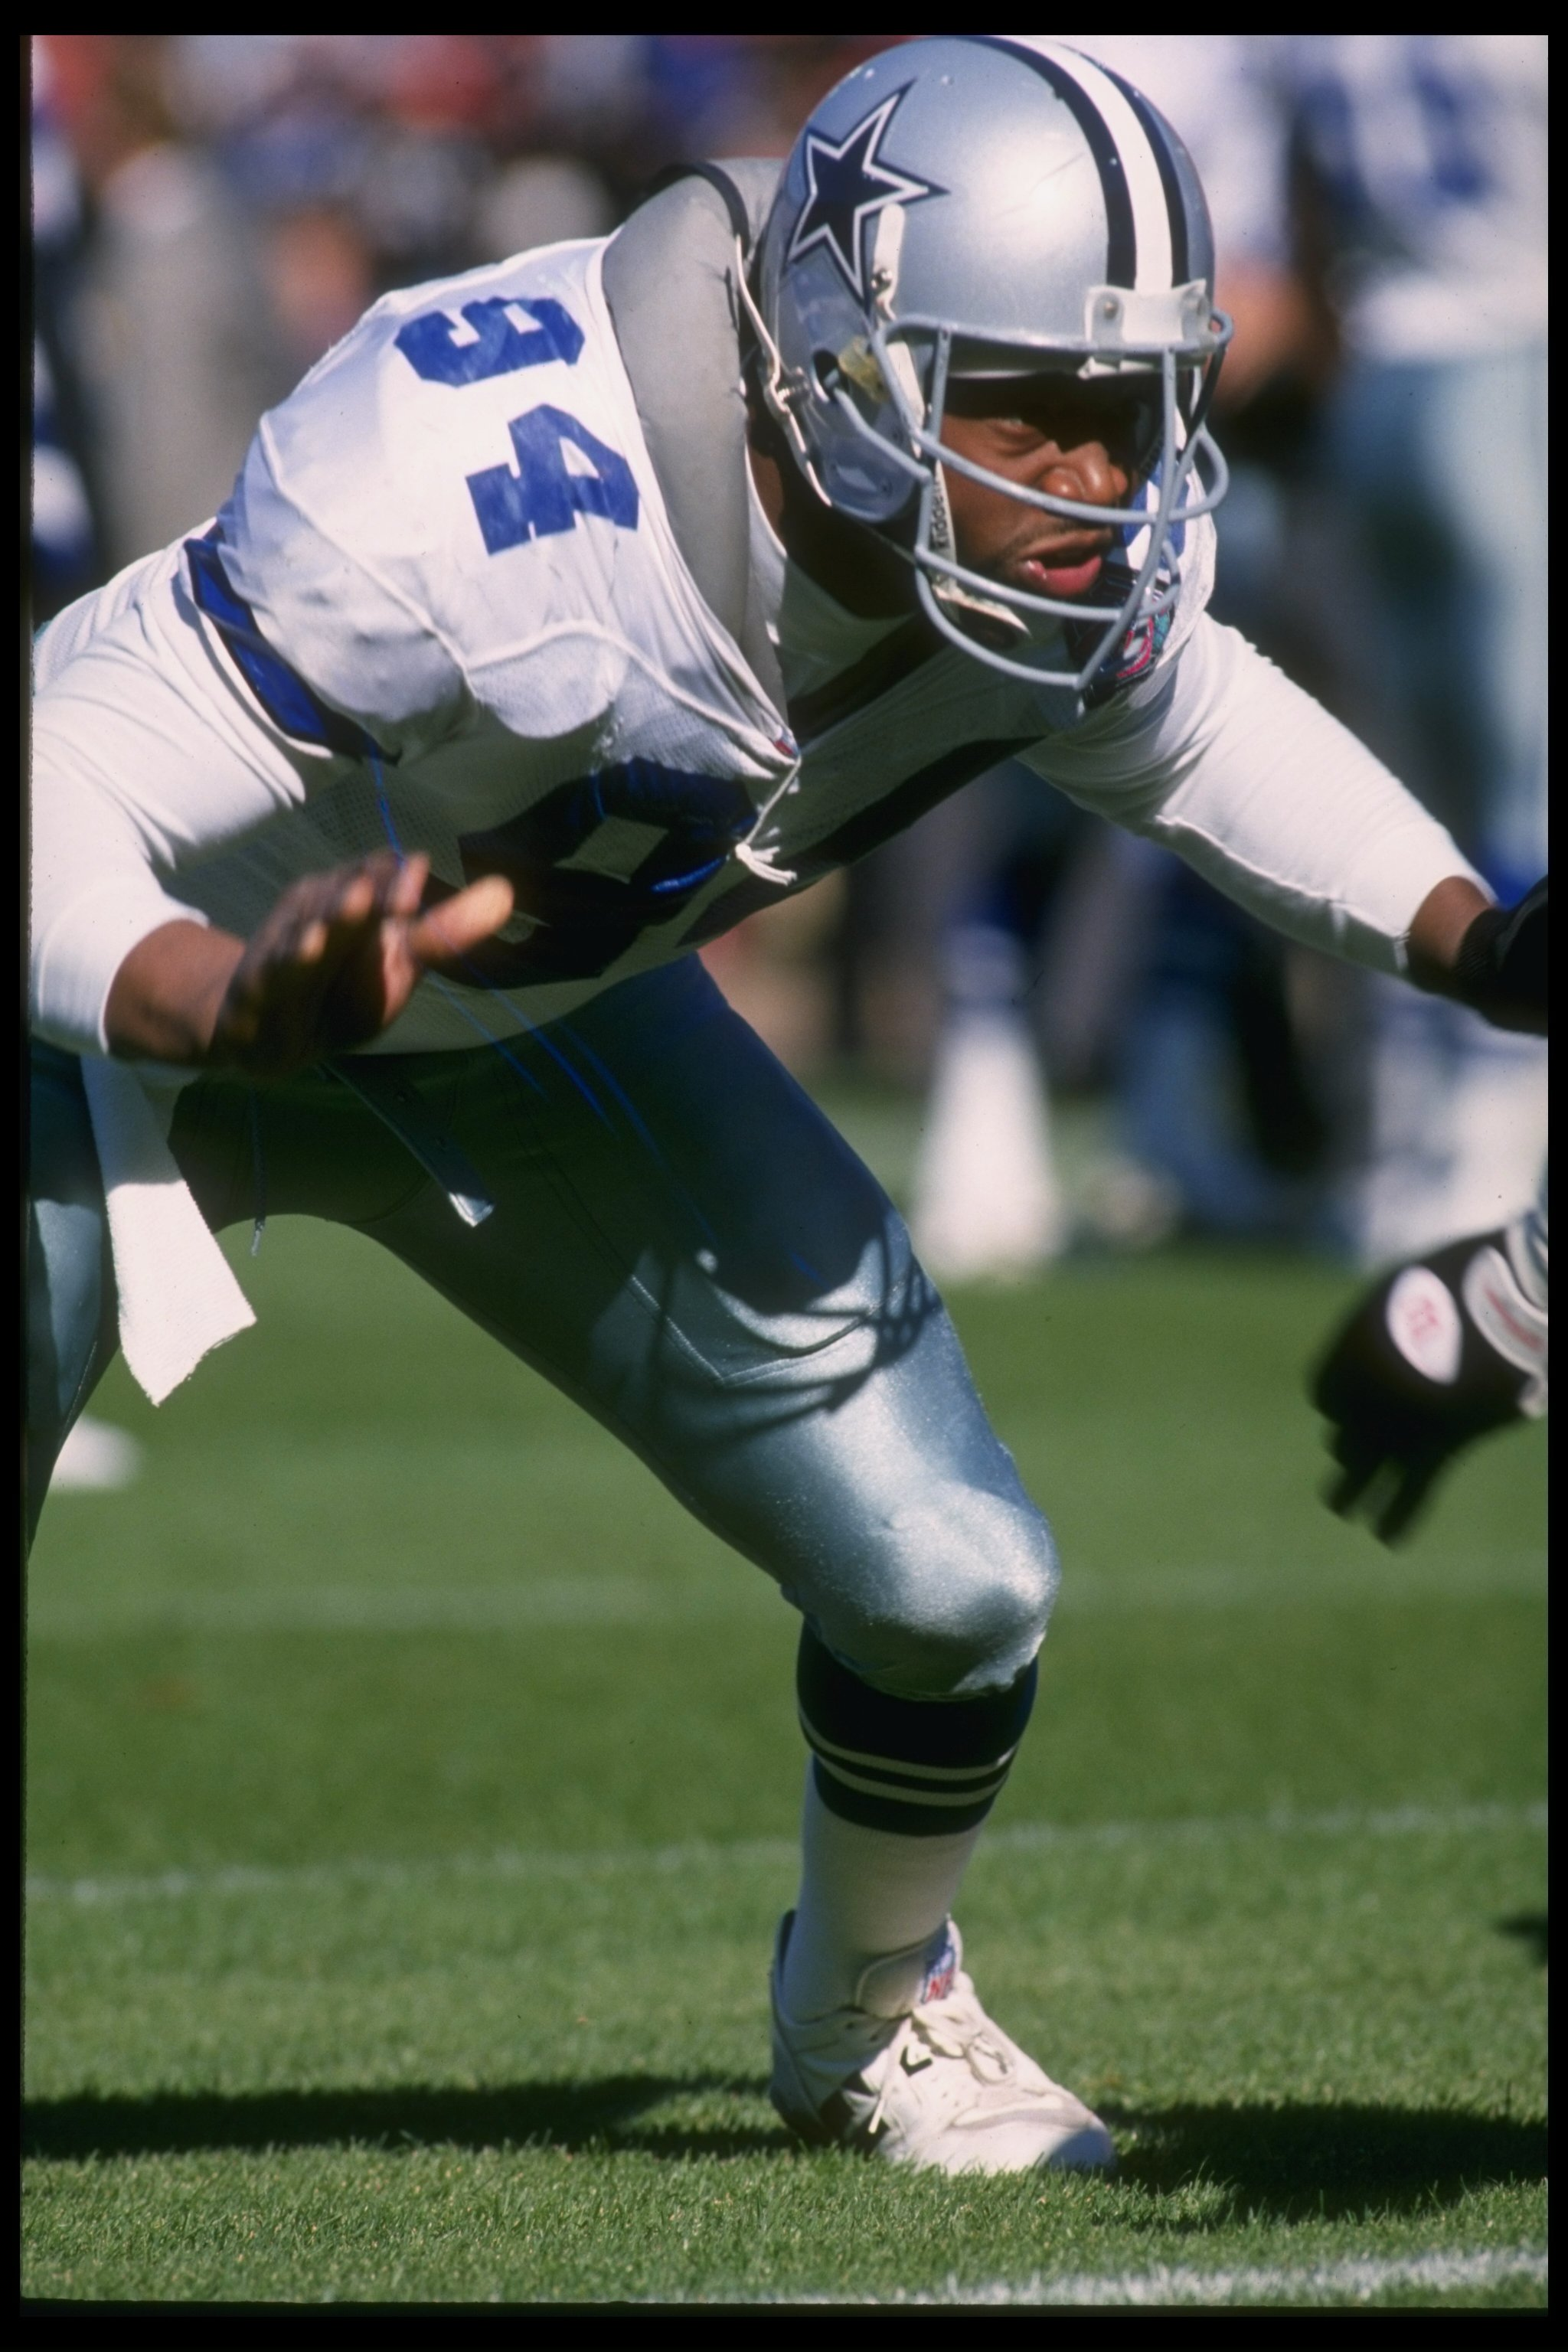 15 Oct 1995: Defensive lineman Charles Haley of the Dallas Cowboys looks on during a game against the San Diego Chargers at Jack Murphy Stadium in San Diego, California. The Cowboys won the game, 23-9.